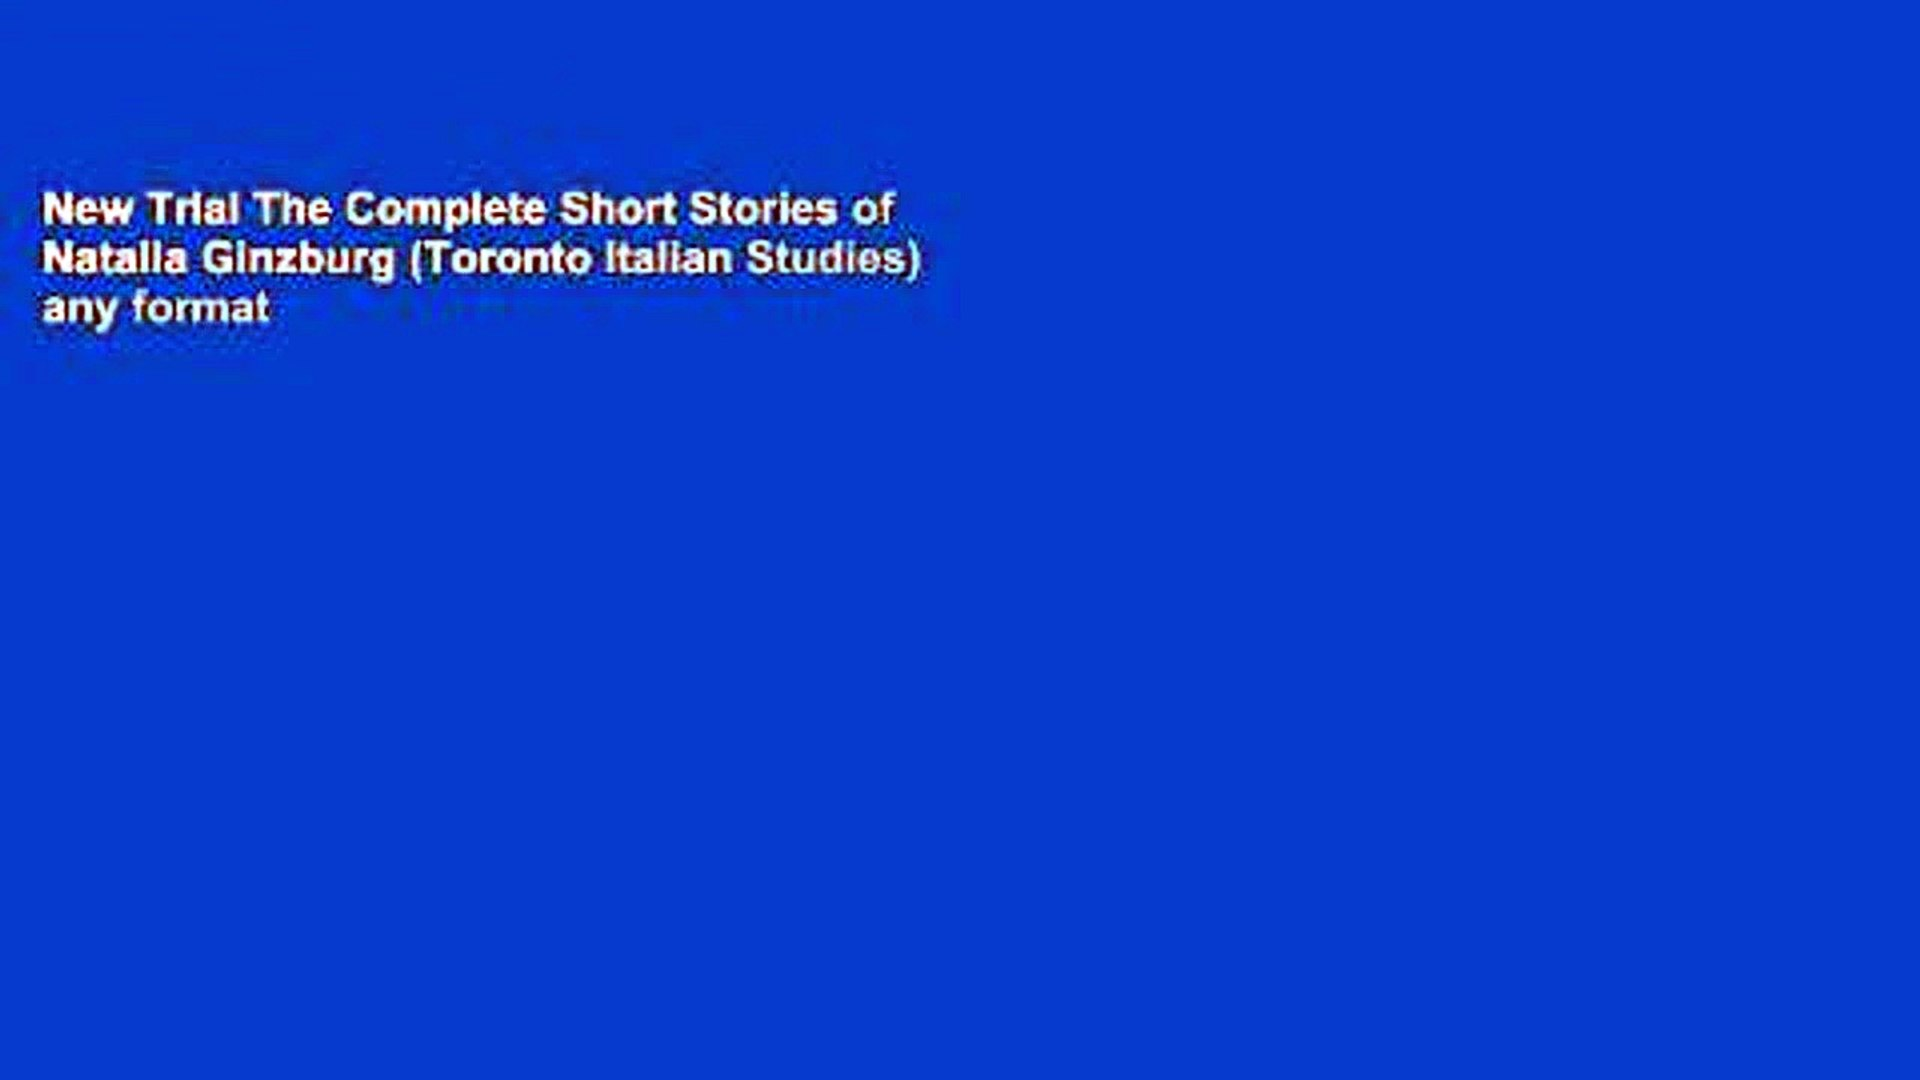 The Complete Short Stories of Natalia Ginzburg (Toronto Italian Studies)